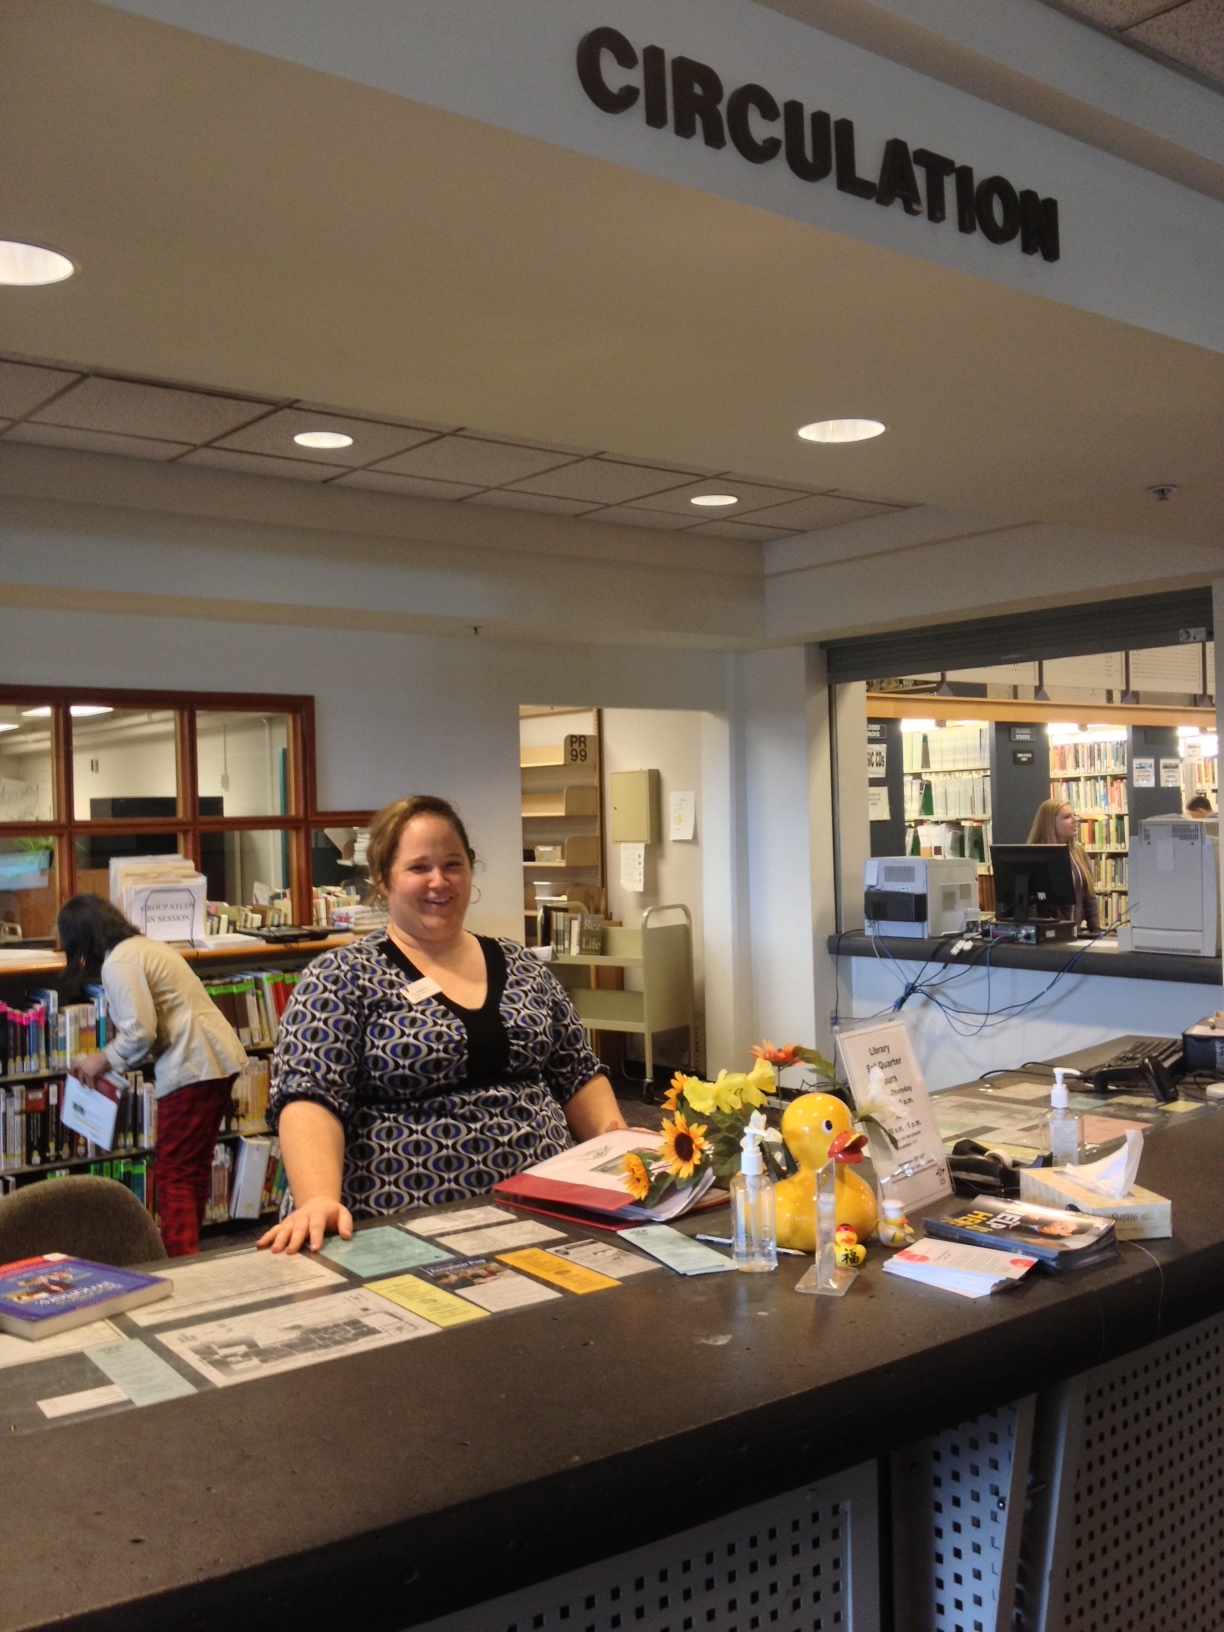 Photograph of Circulation Desk and Jill Merritt, Circulation Supervisor